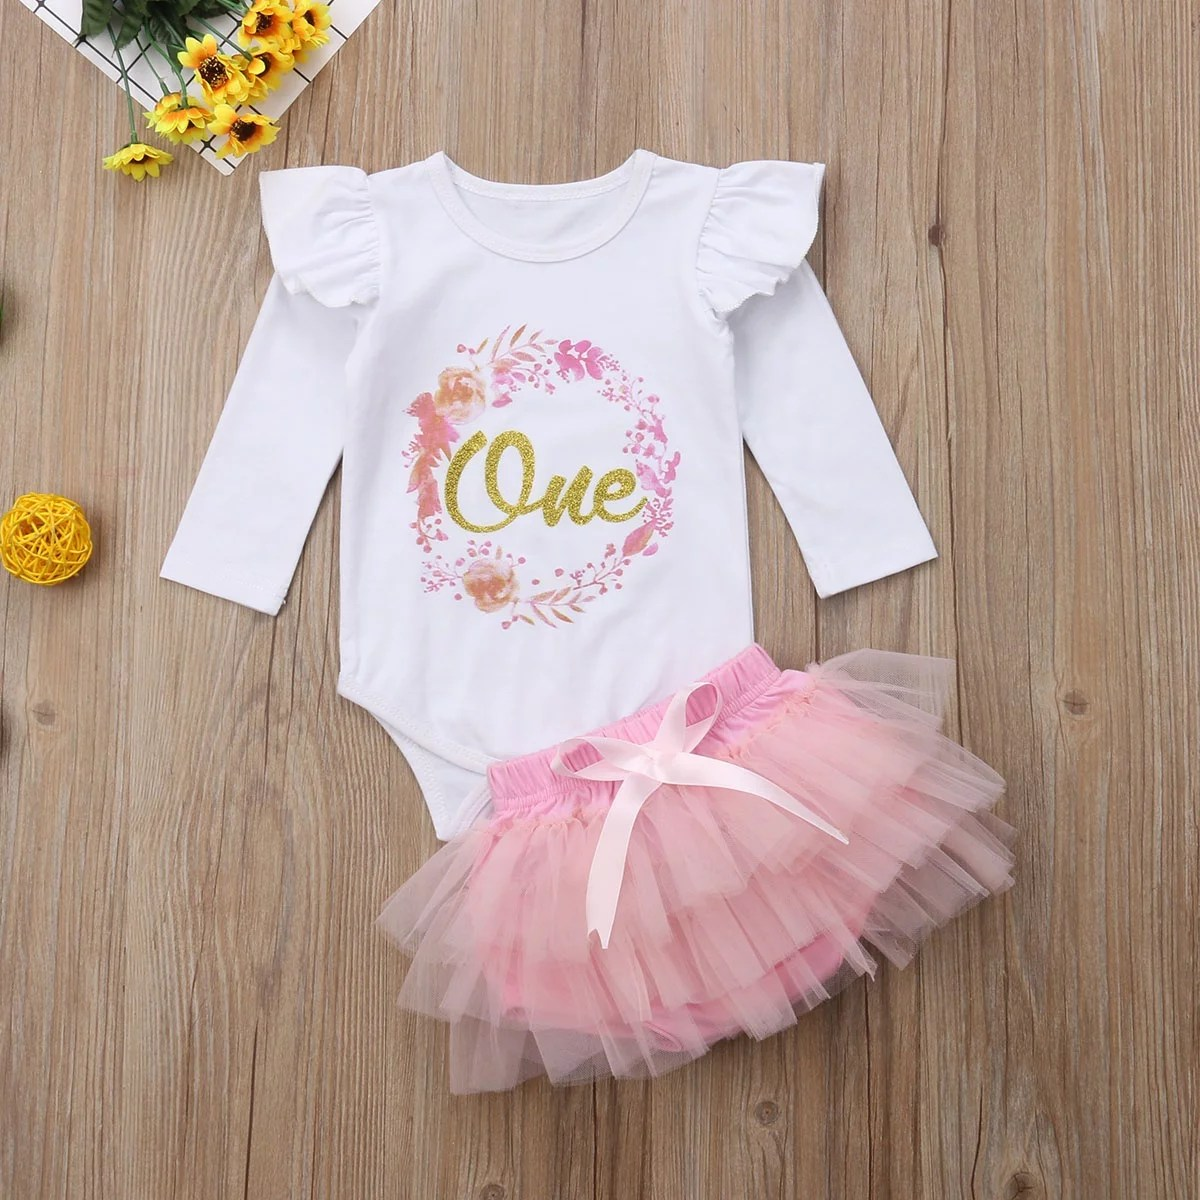 Baby Girl 1st Birthday Outfit One Year Party Cake Smash Tutu Skirt Clothes Set Walmart Canada